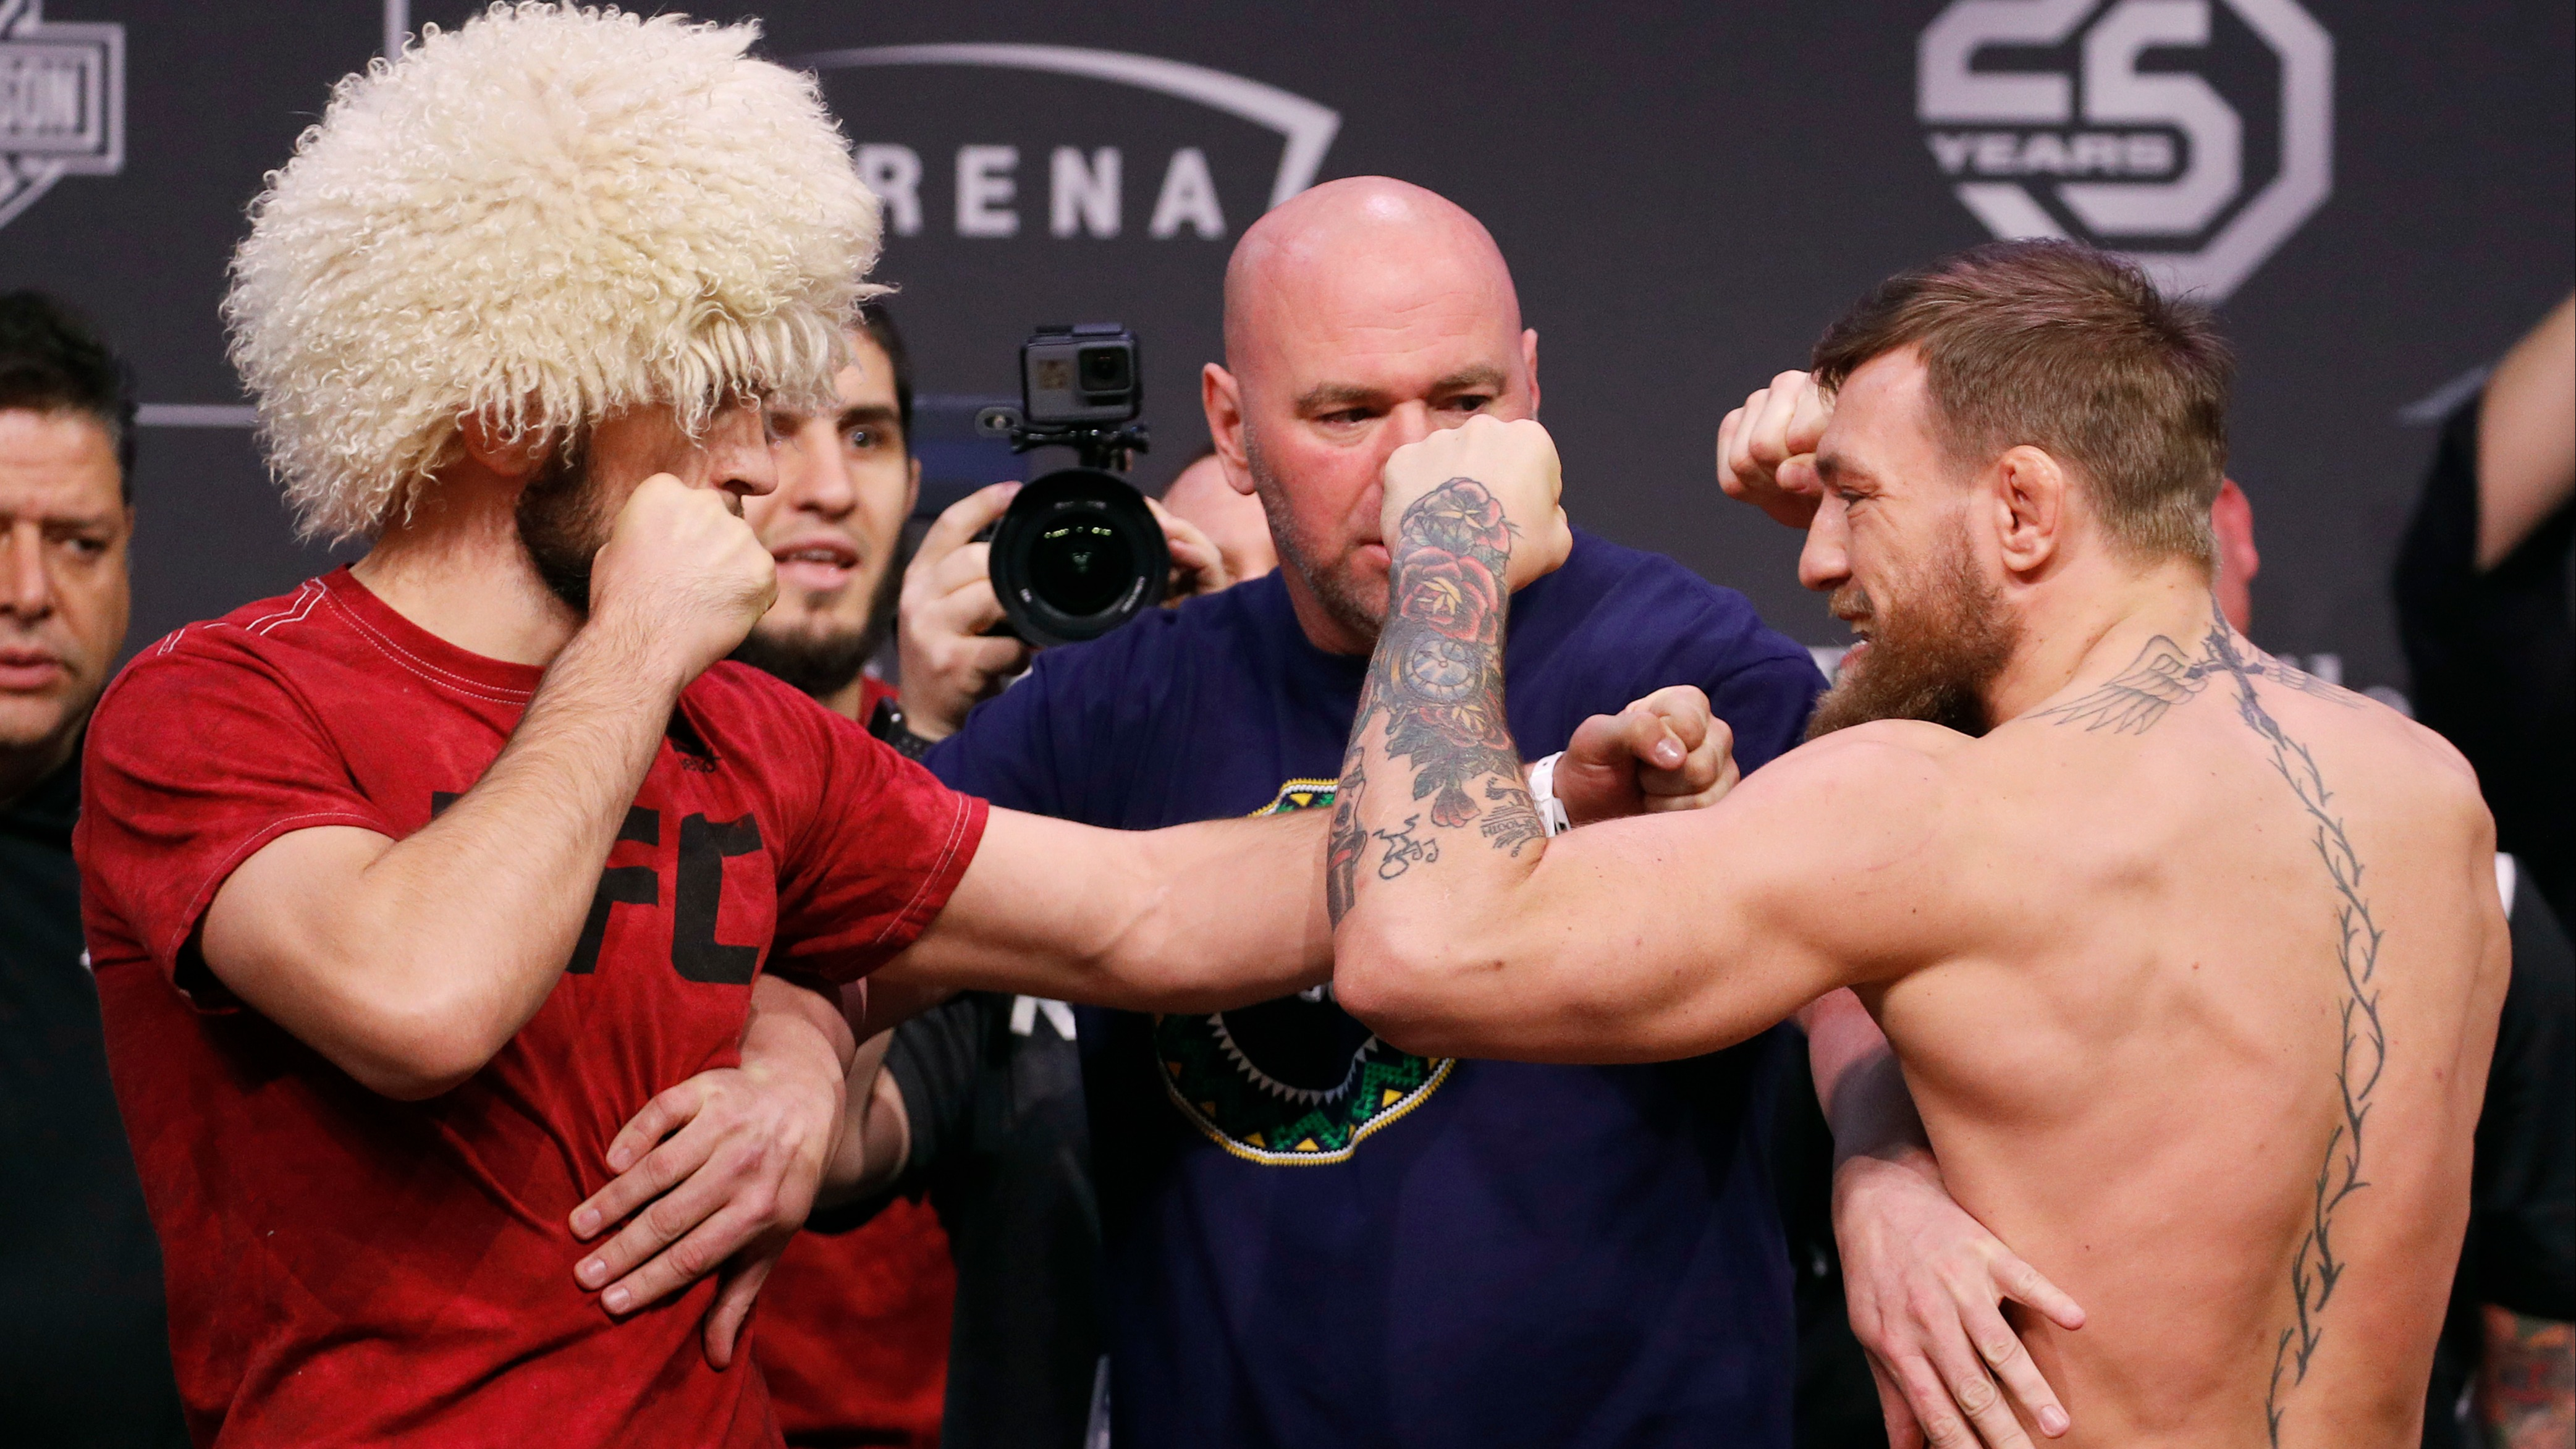 Bet on ufc 229 britain and the eu referendum betting